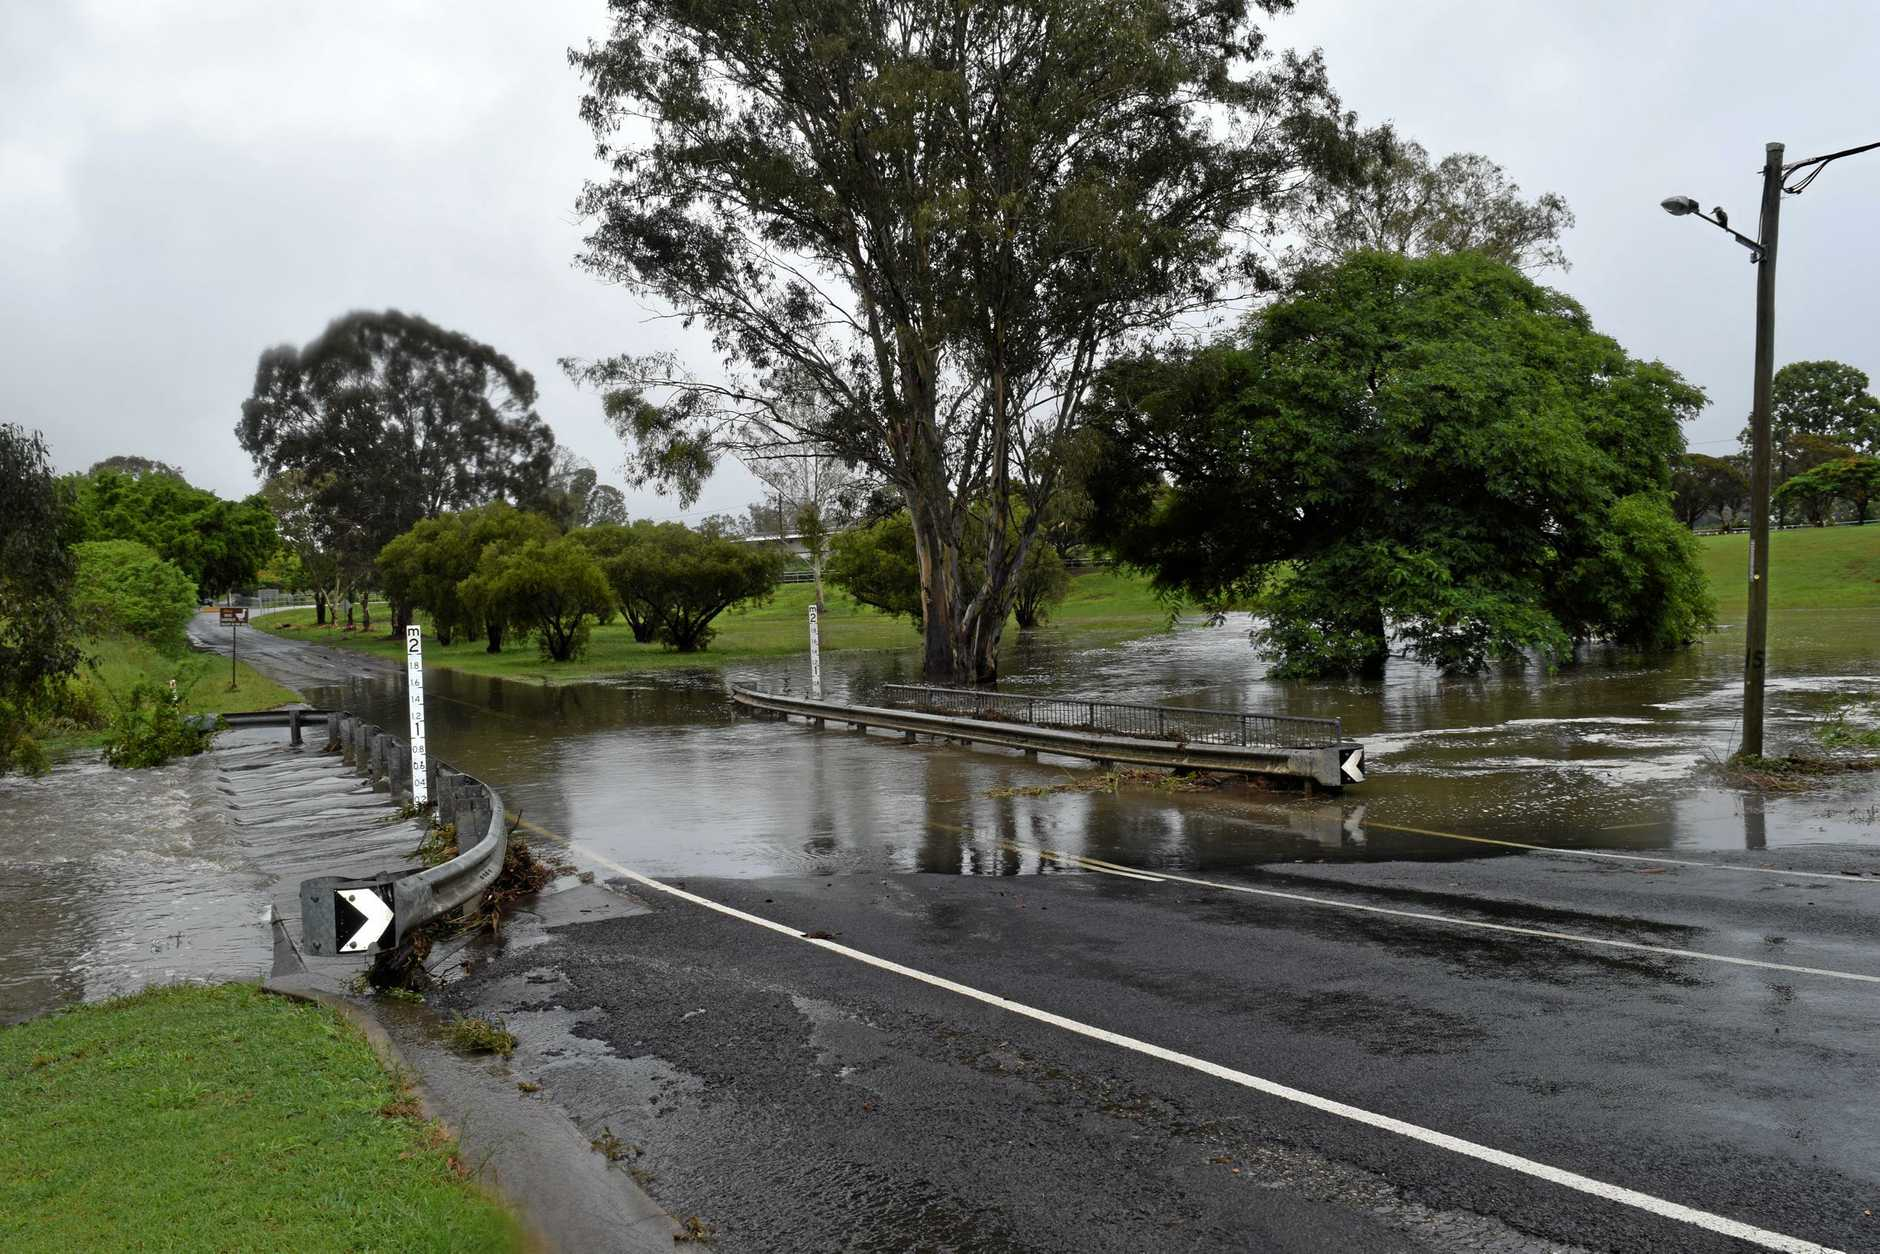 Flash flooding from more than 100mm of rain caused Fraser Coast Regional Council to close Queen St near Lions Dr in Maryborough on Friday, December 14.